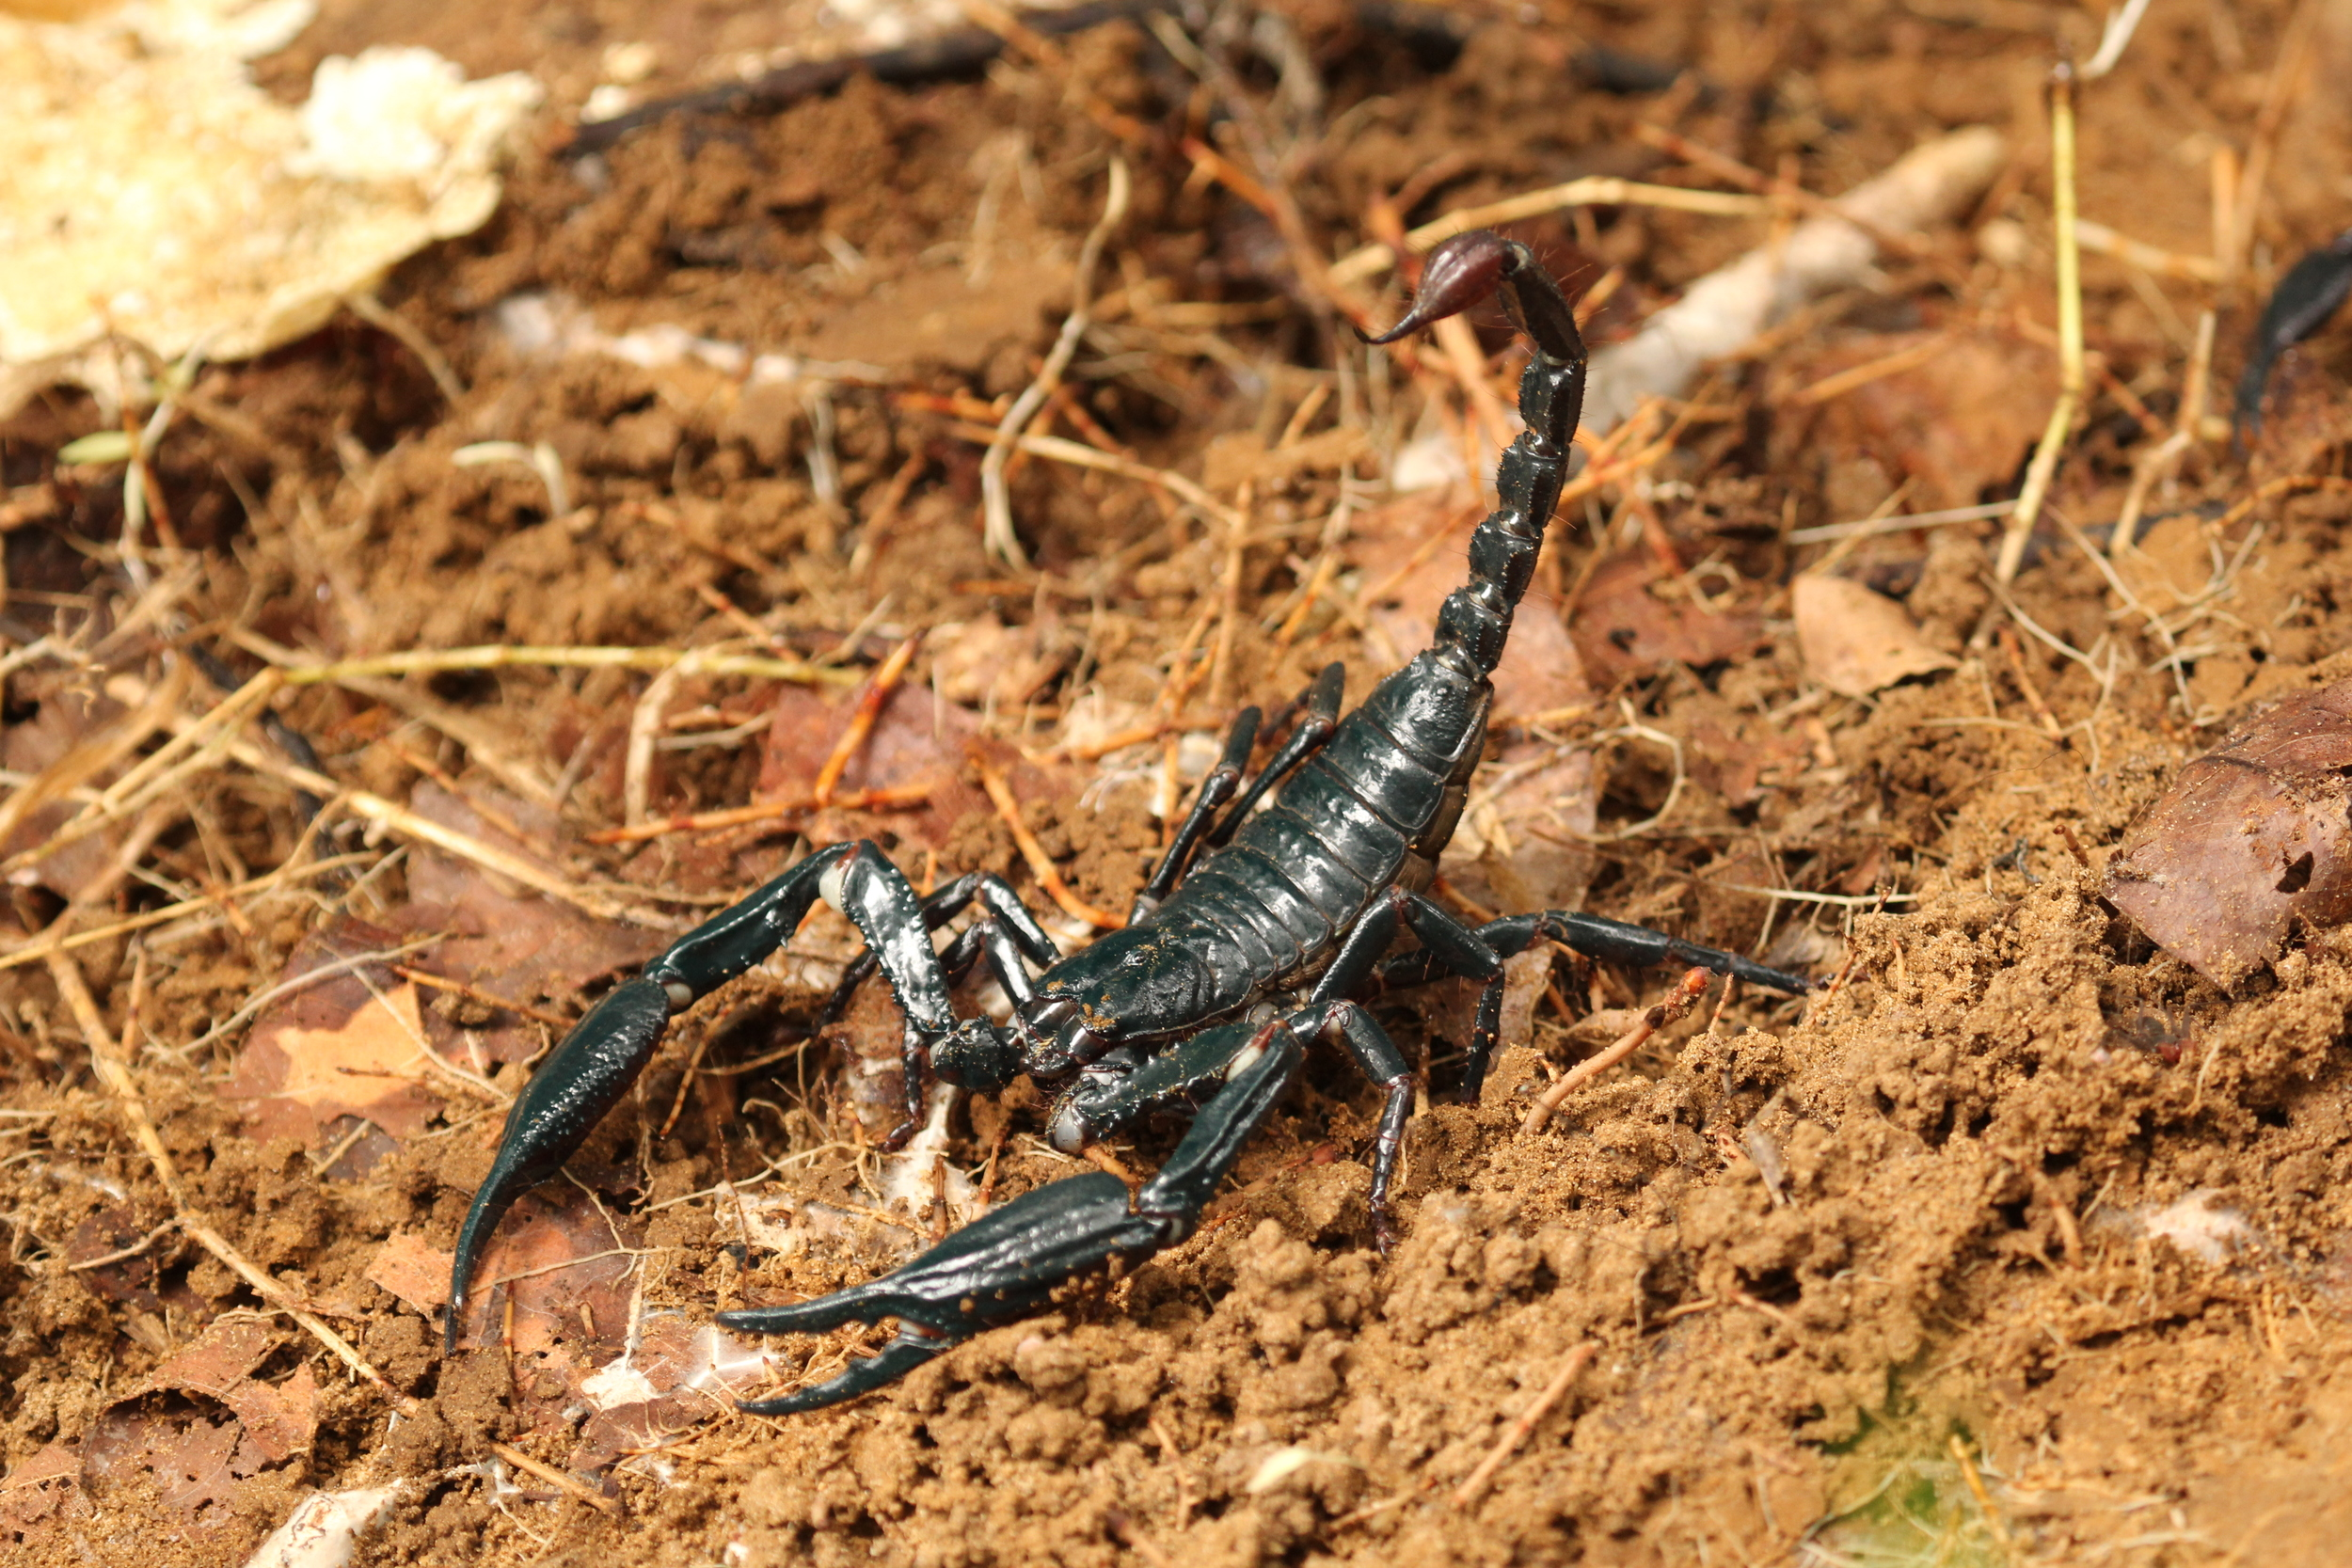 an iridescent scorpion found under a log. photo credit: Jackie Childers